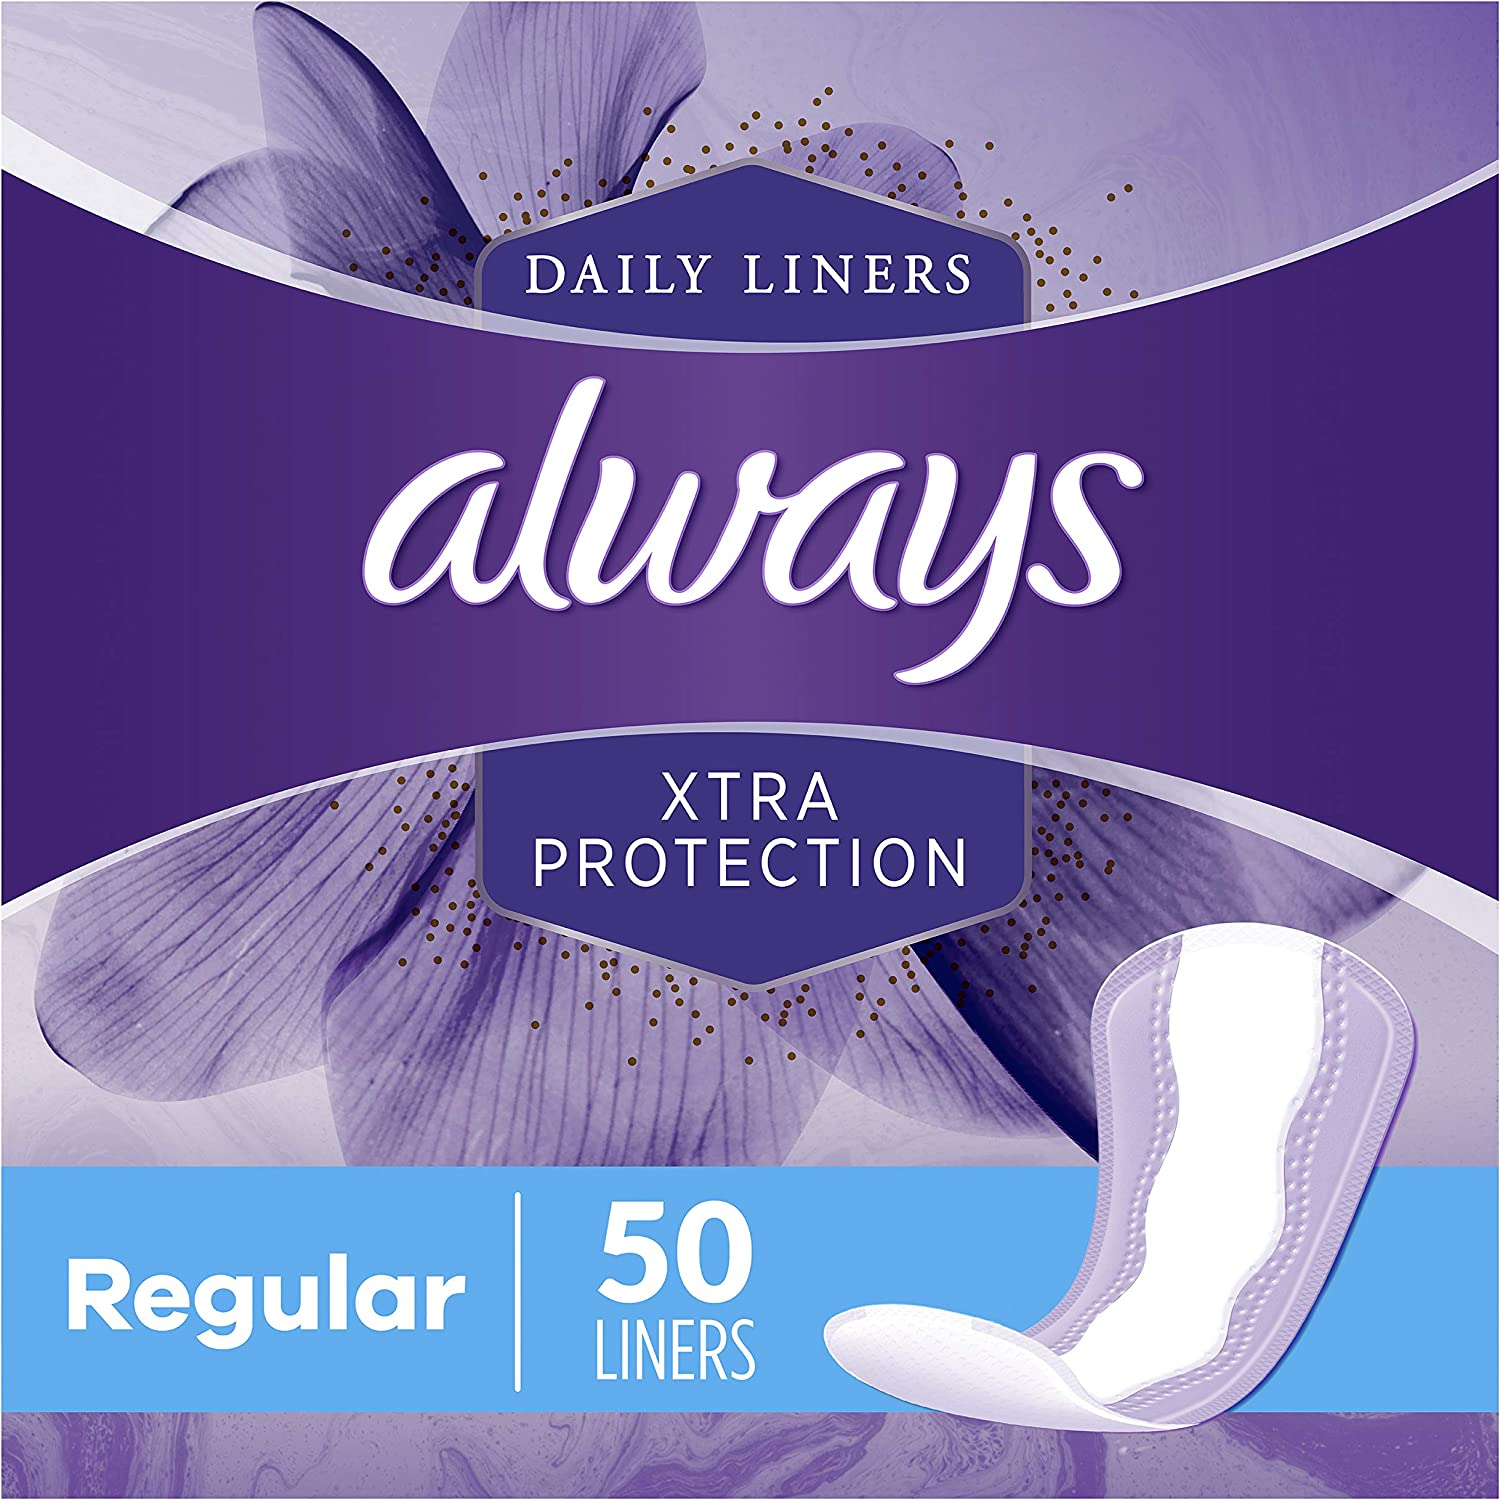 Always Xtra Protection Daily Feminine Panty Liners for Women, 300 Count, Regular, 50 Count - Pack of 6 (300 Total Count): Health & Personal Care